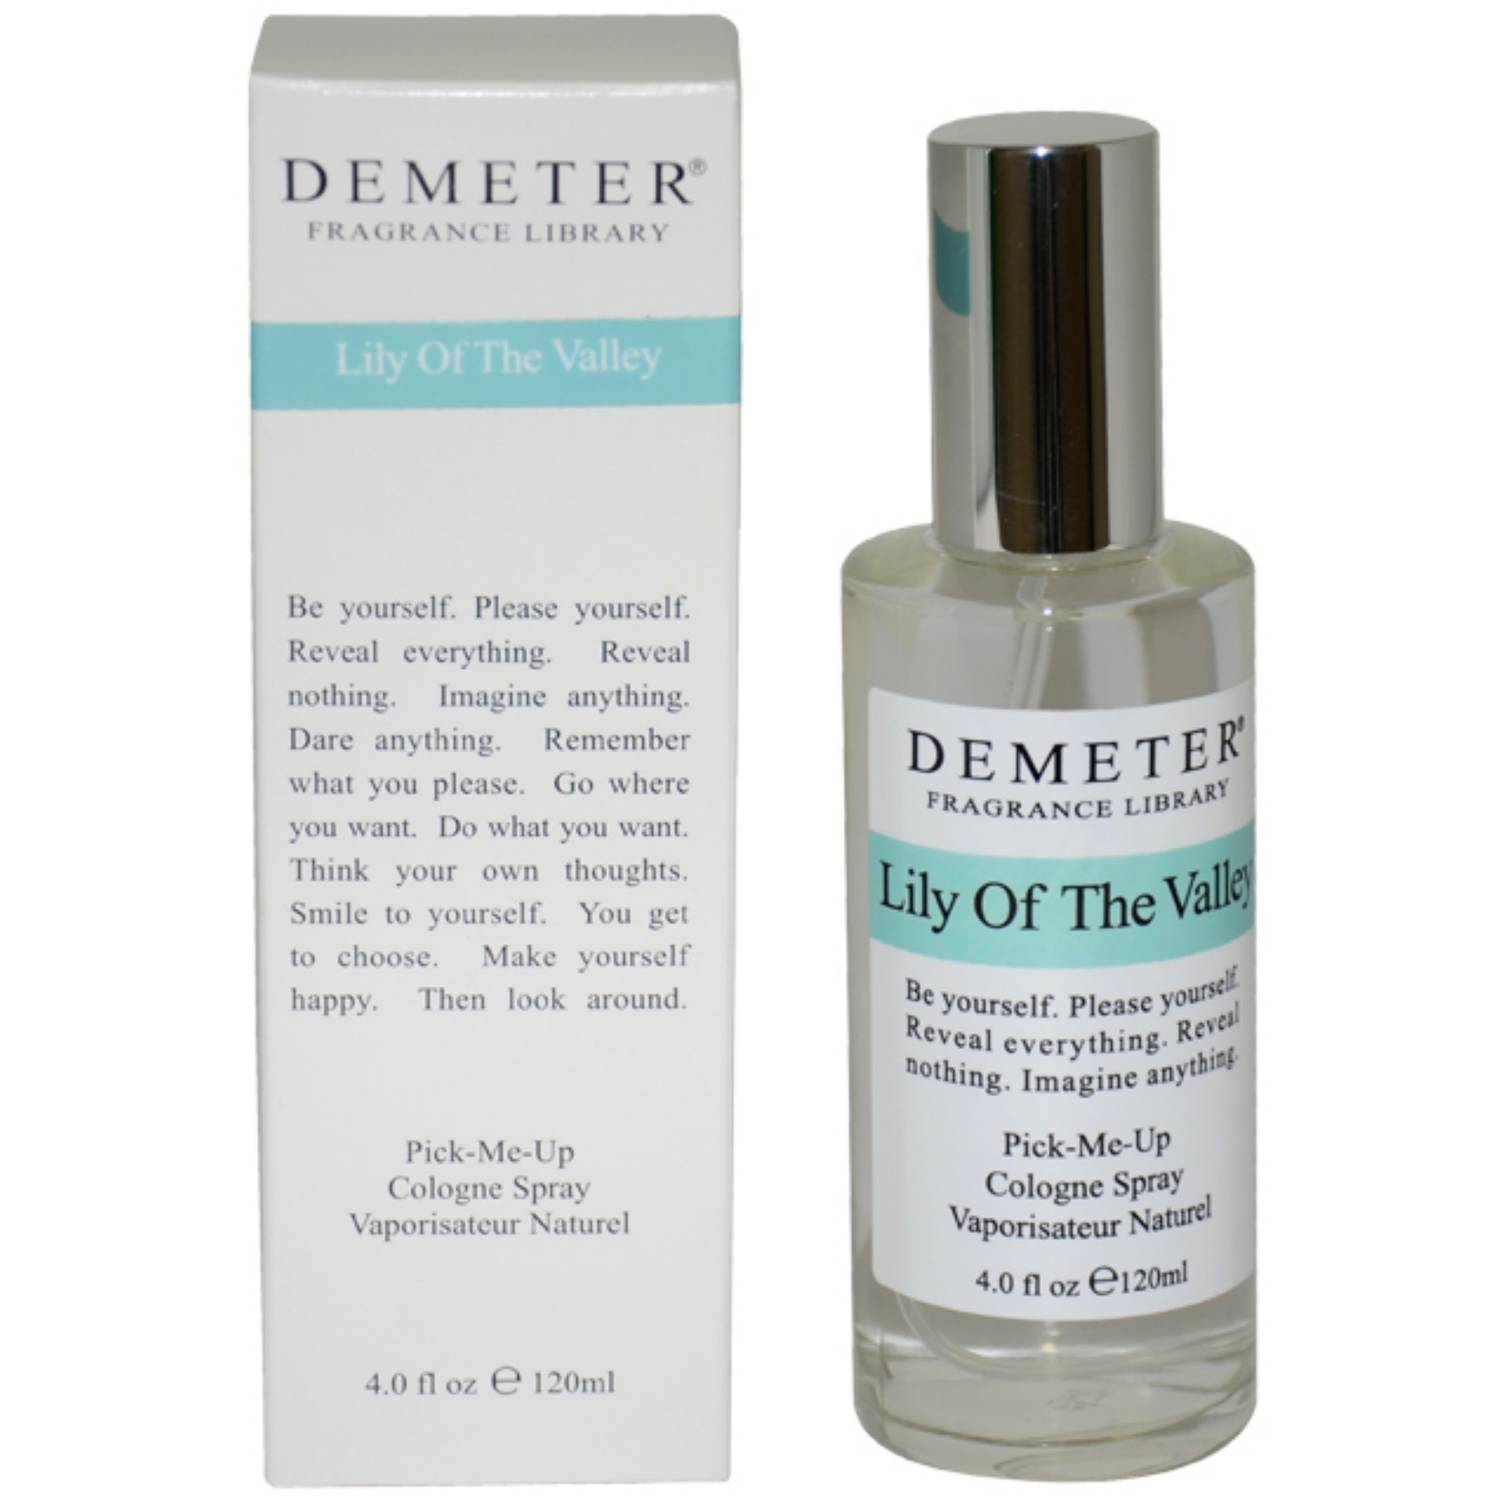 Demeter Lily Of The Valley Cologne Spray, 4 fl oz